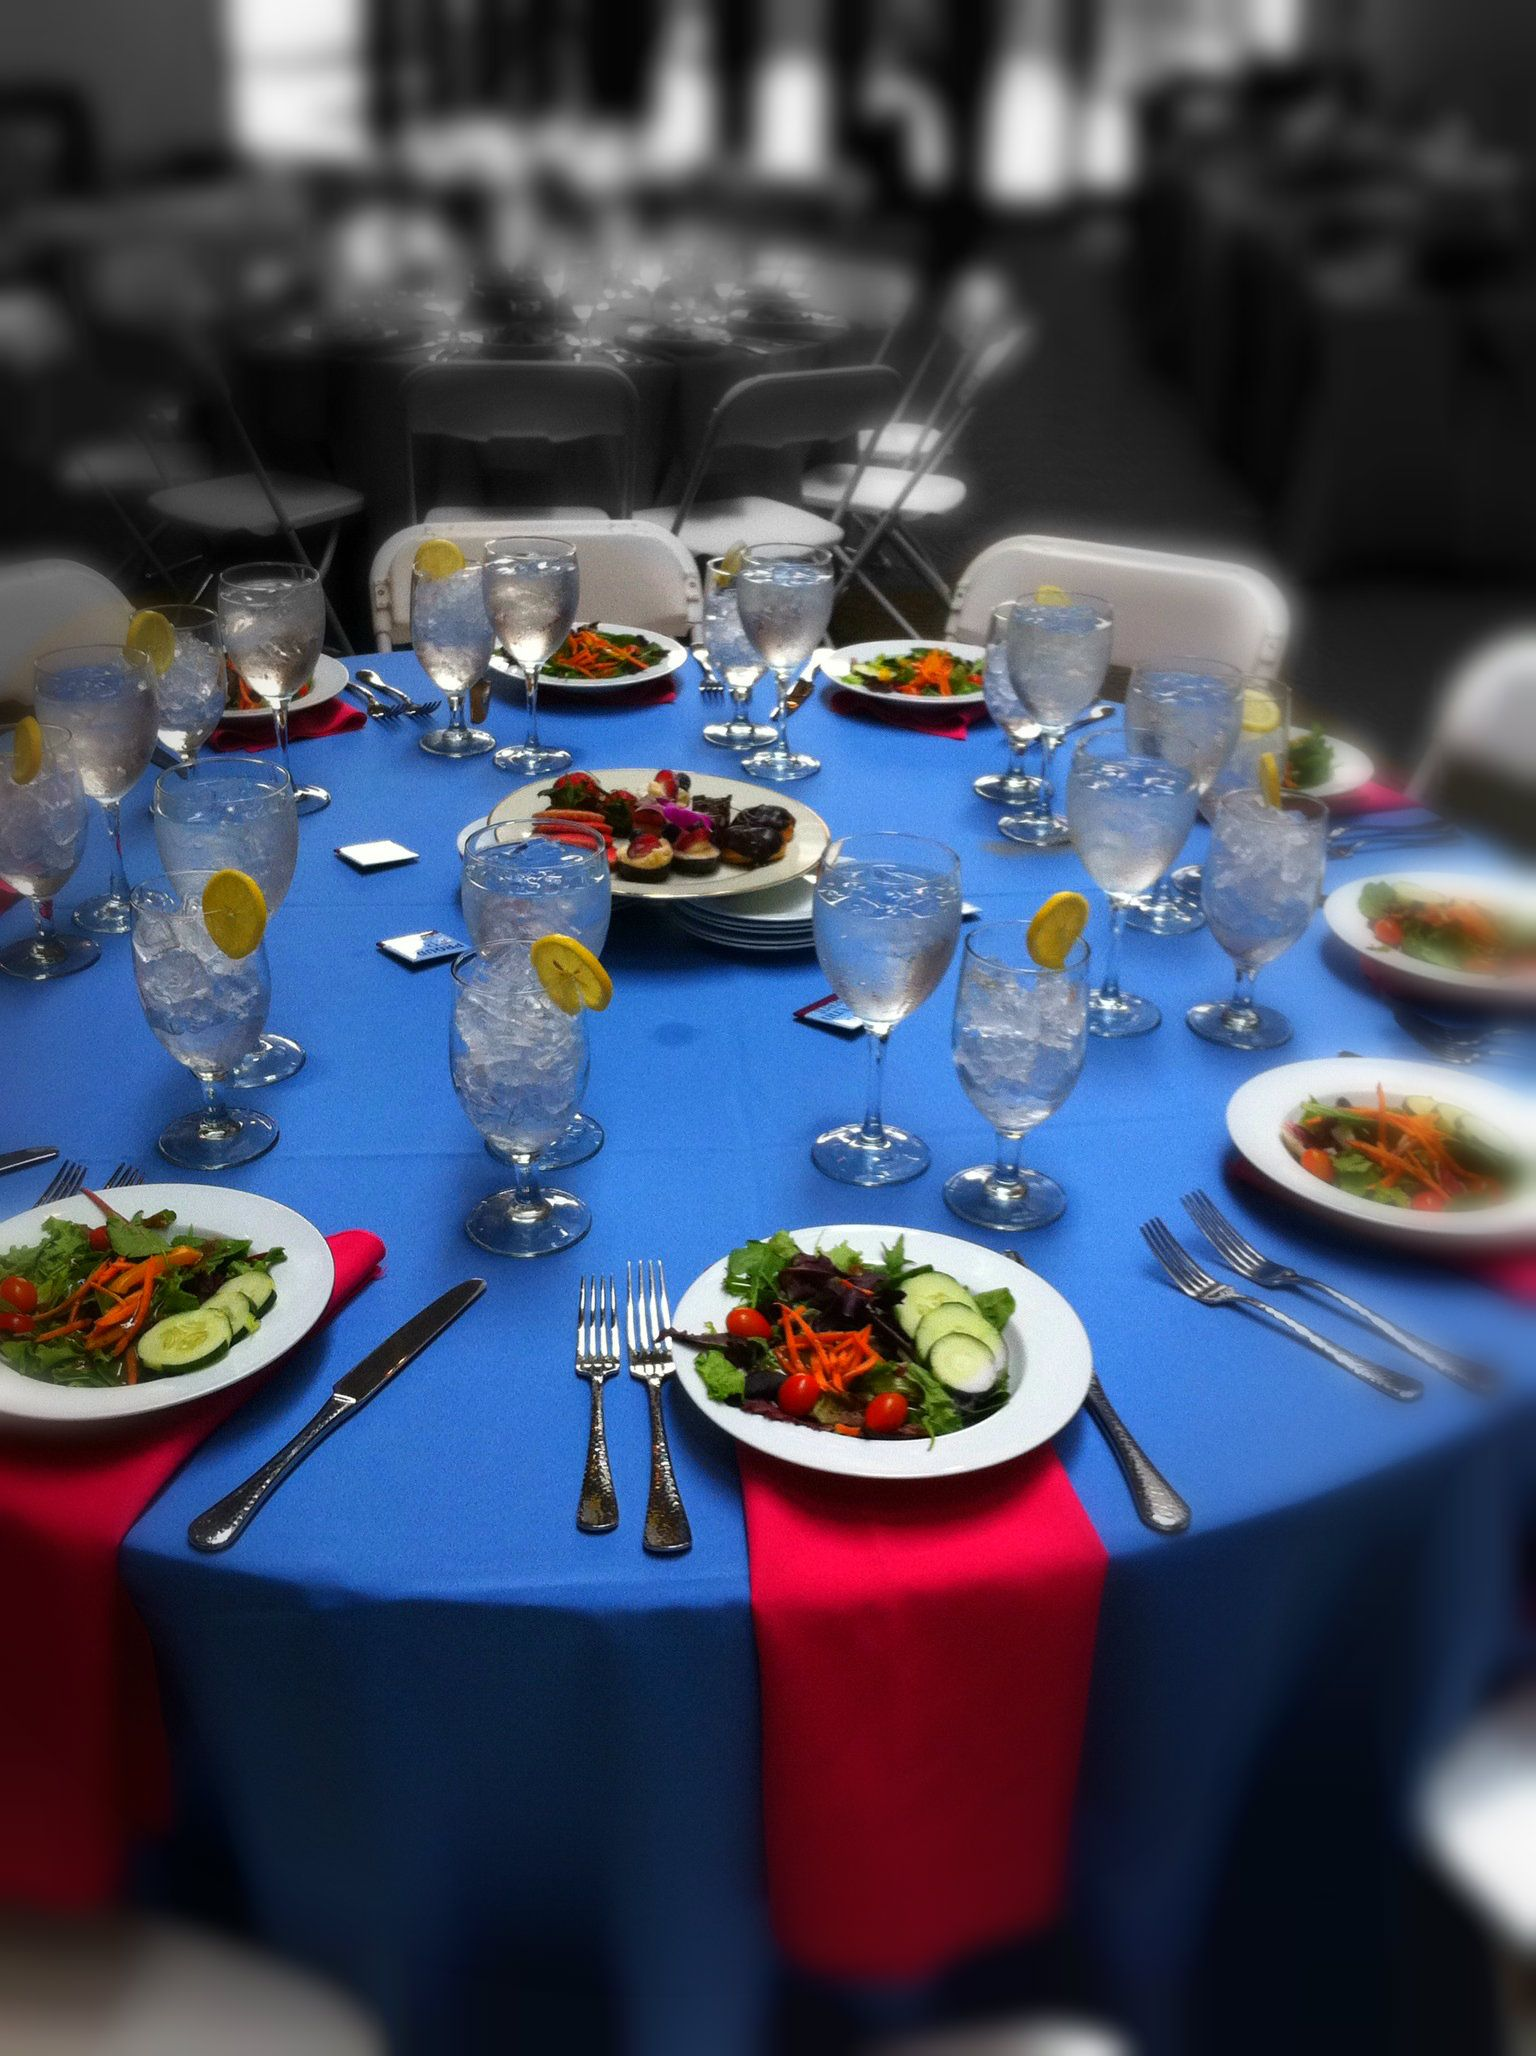 Chefs Table Catering Pink Blue Luncheon Great Table Design - Chef's table catering